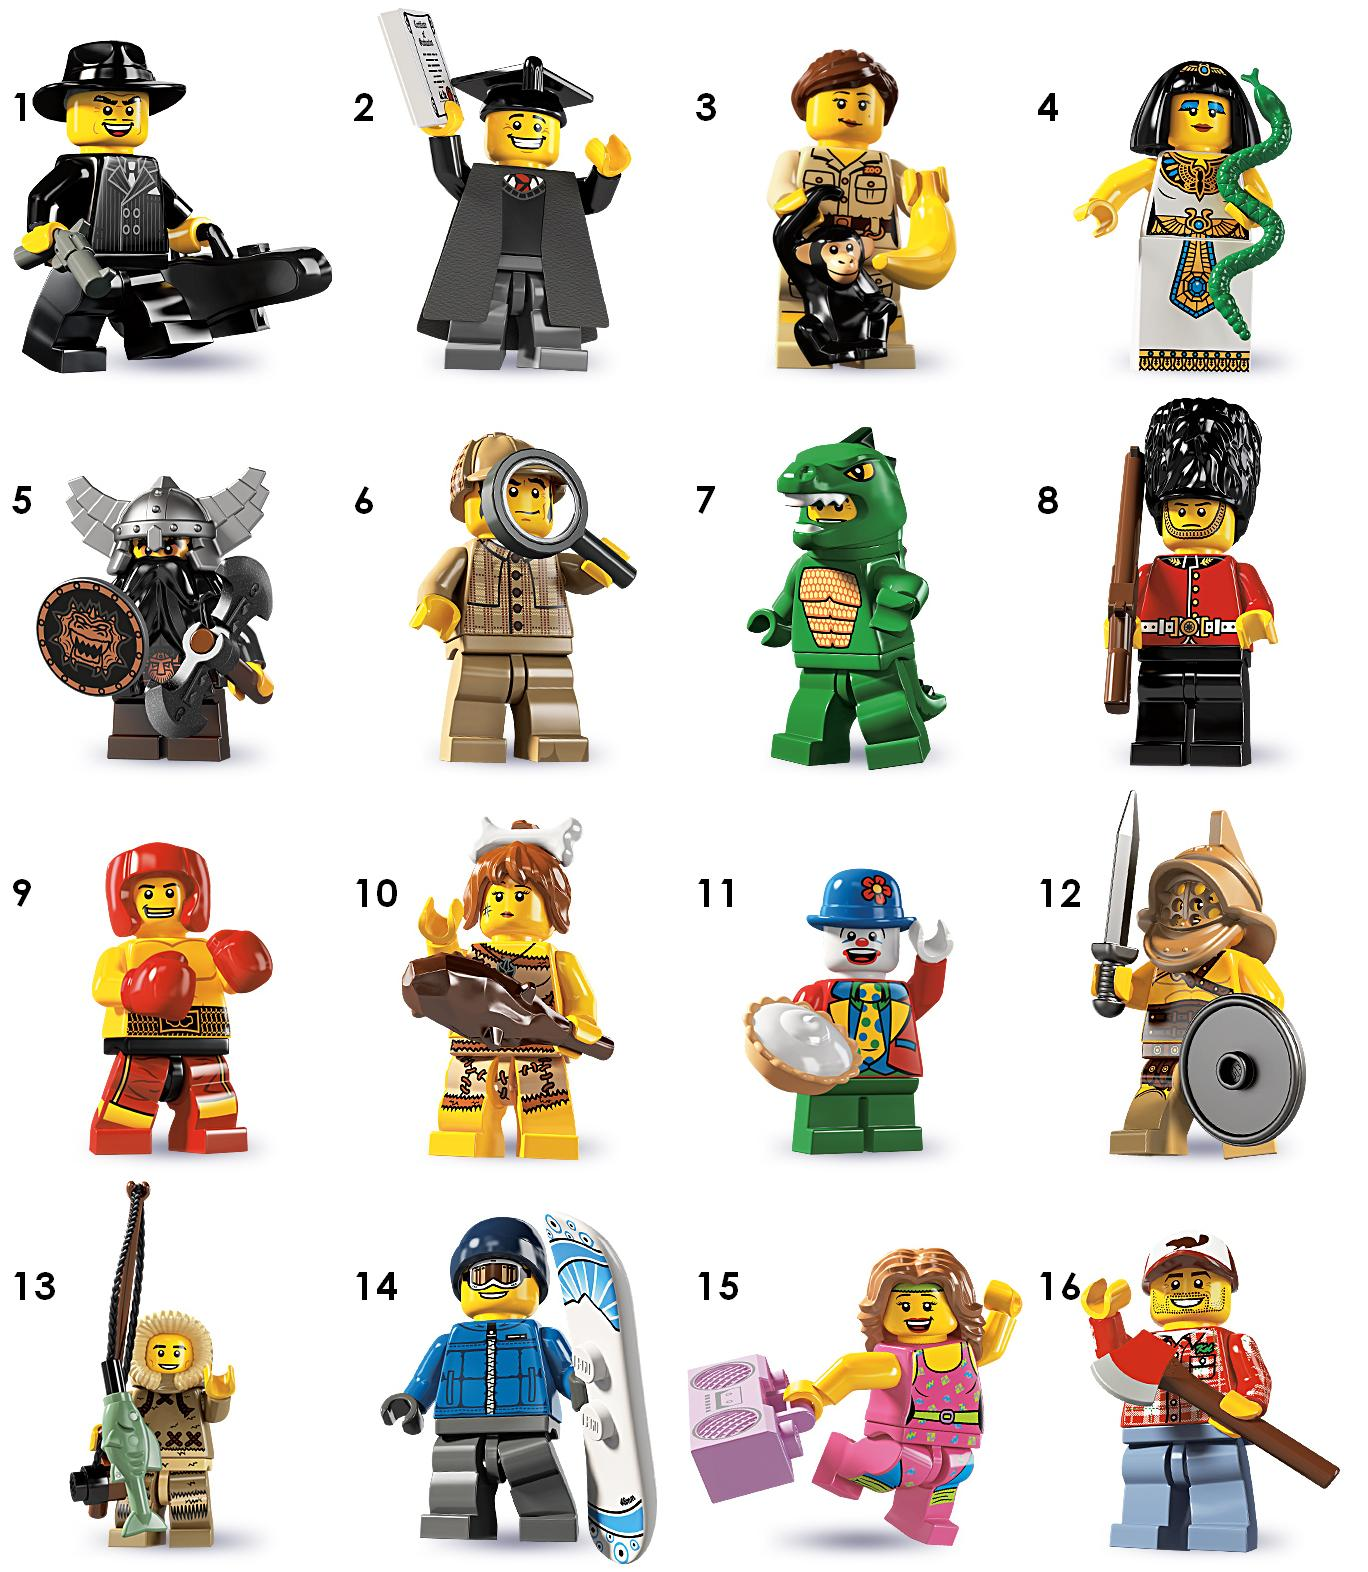 image lego series 5 minifigures jpg brickipedia fandom powered by wikia. Black Bedroom Furniture Sets. Home Design Ideas